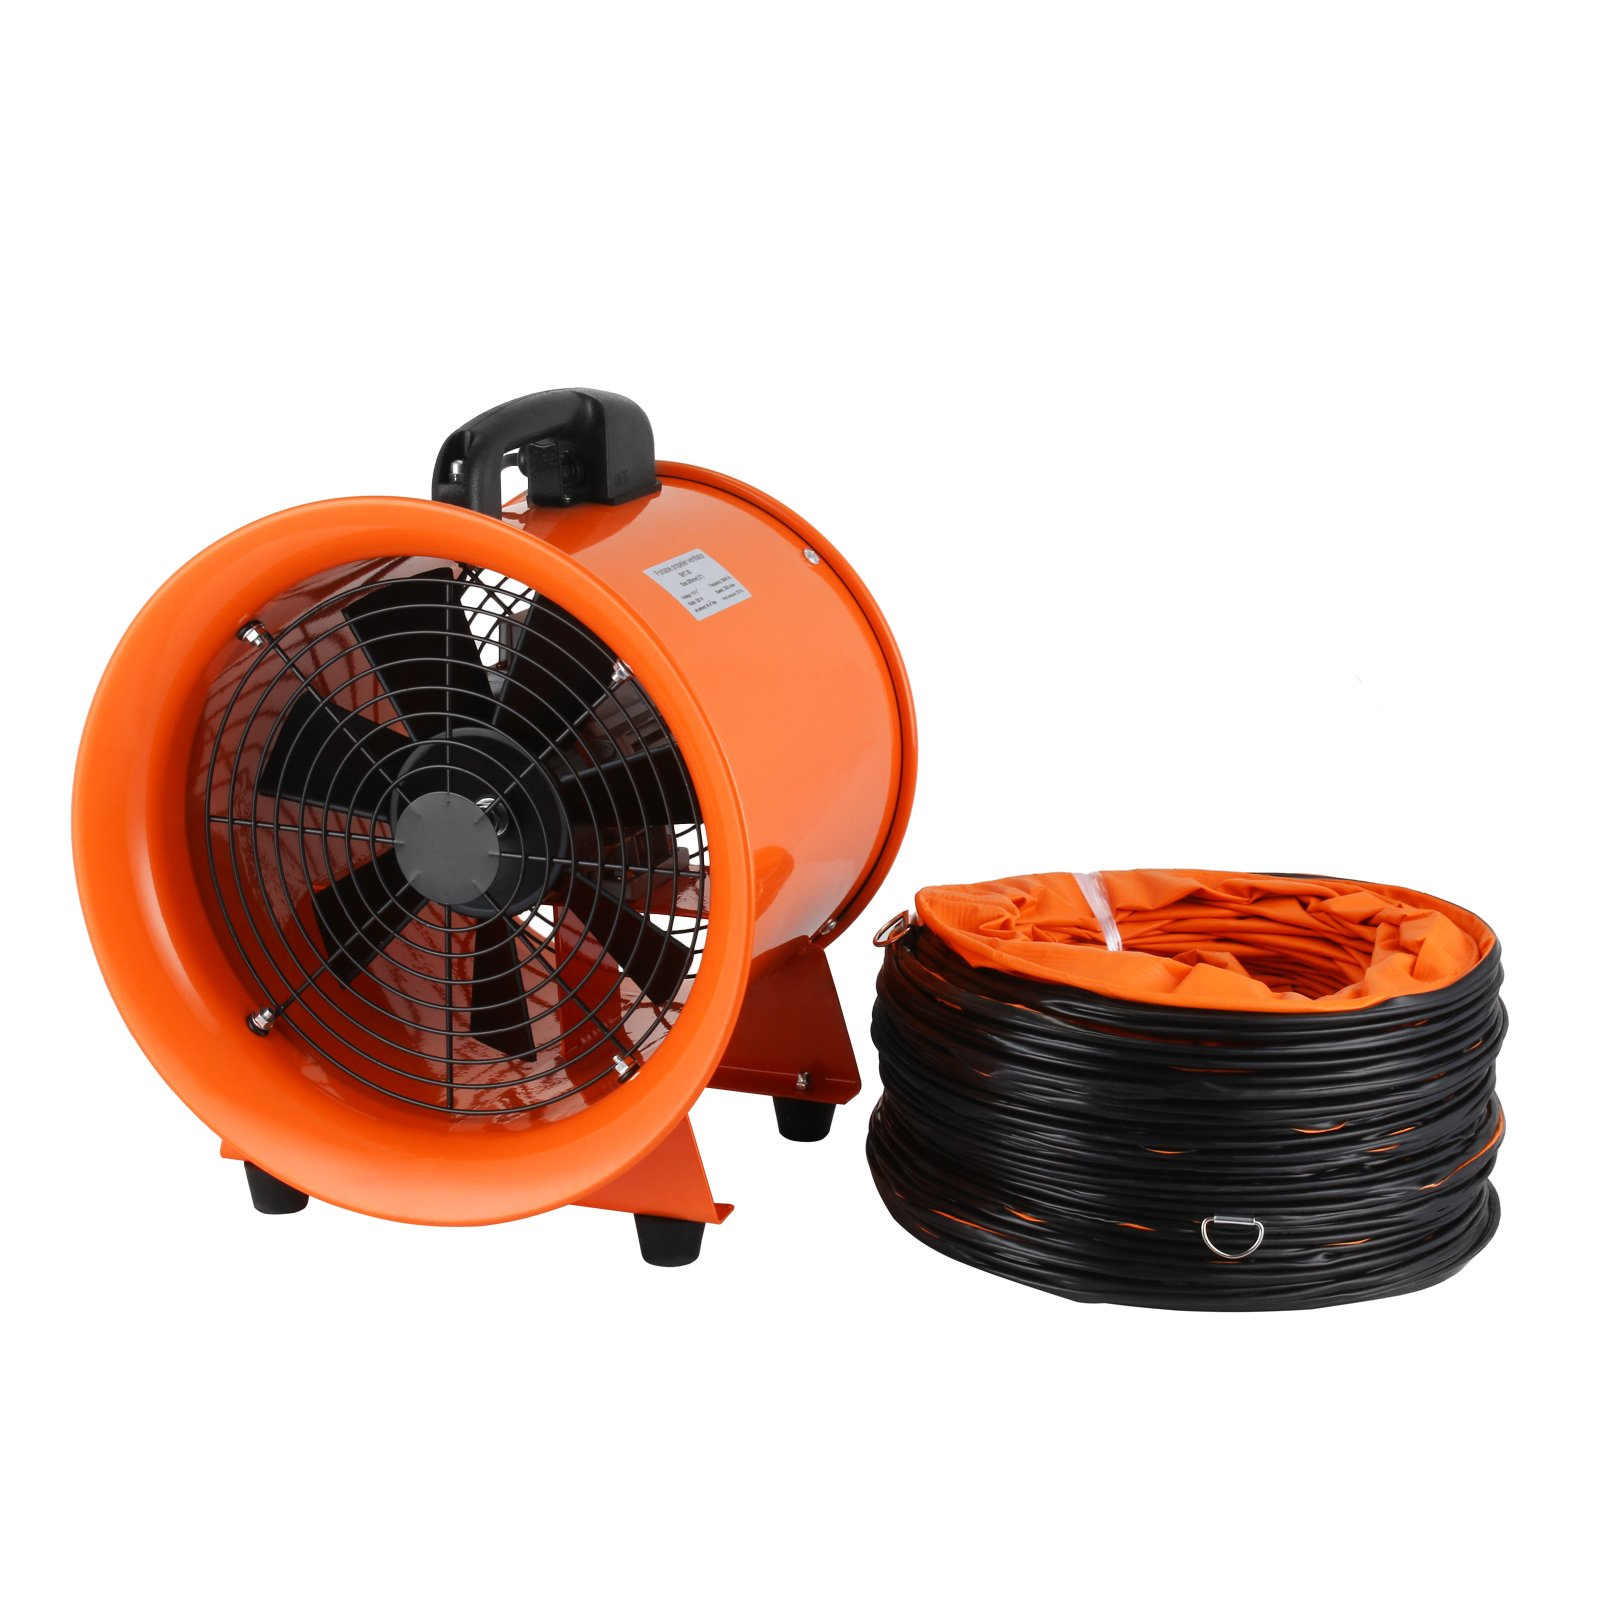 OrangeA Utility Blower 12 Inch 0.7HP 2295 CFM 3300 RPM Portable Ventilator High Velocity Utility Blower Fan New Style Stand Ventilator Fume Extractor with 5M Duct Hose